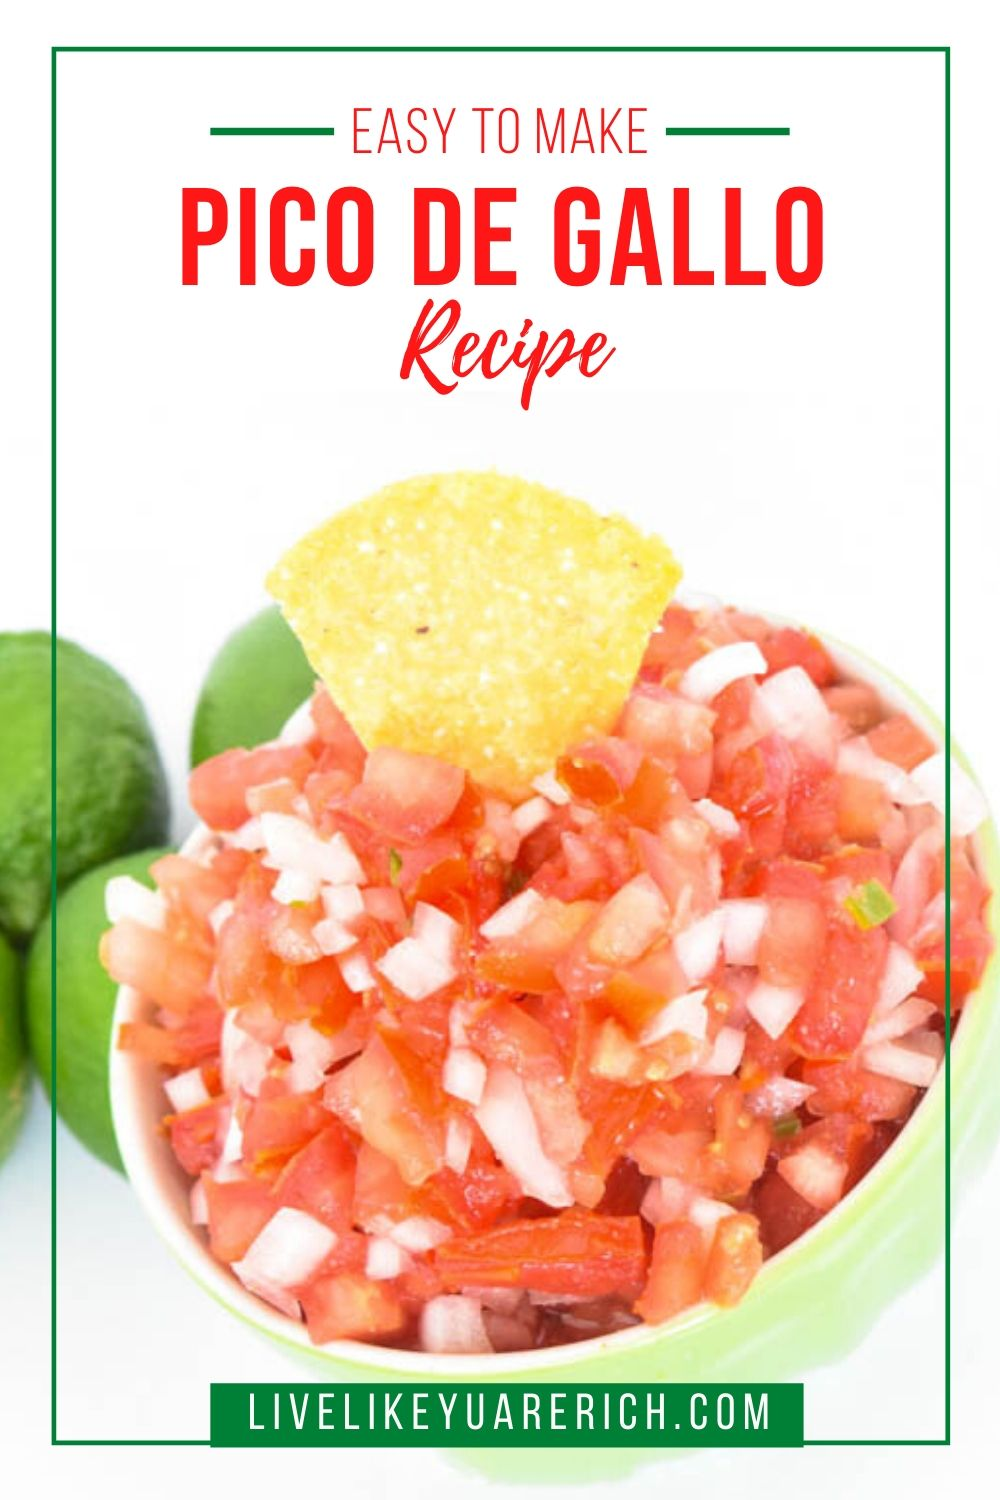 This is an easy to make yet delicious Pico de Gallo. It is likely going to be the talk of the party. I'm so excited to share it with you. I hope you enjoy it as much as I and many others have too.